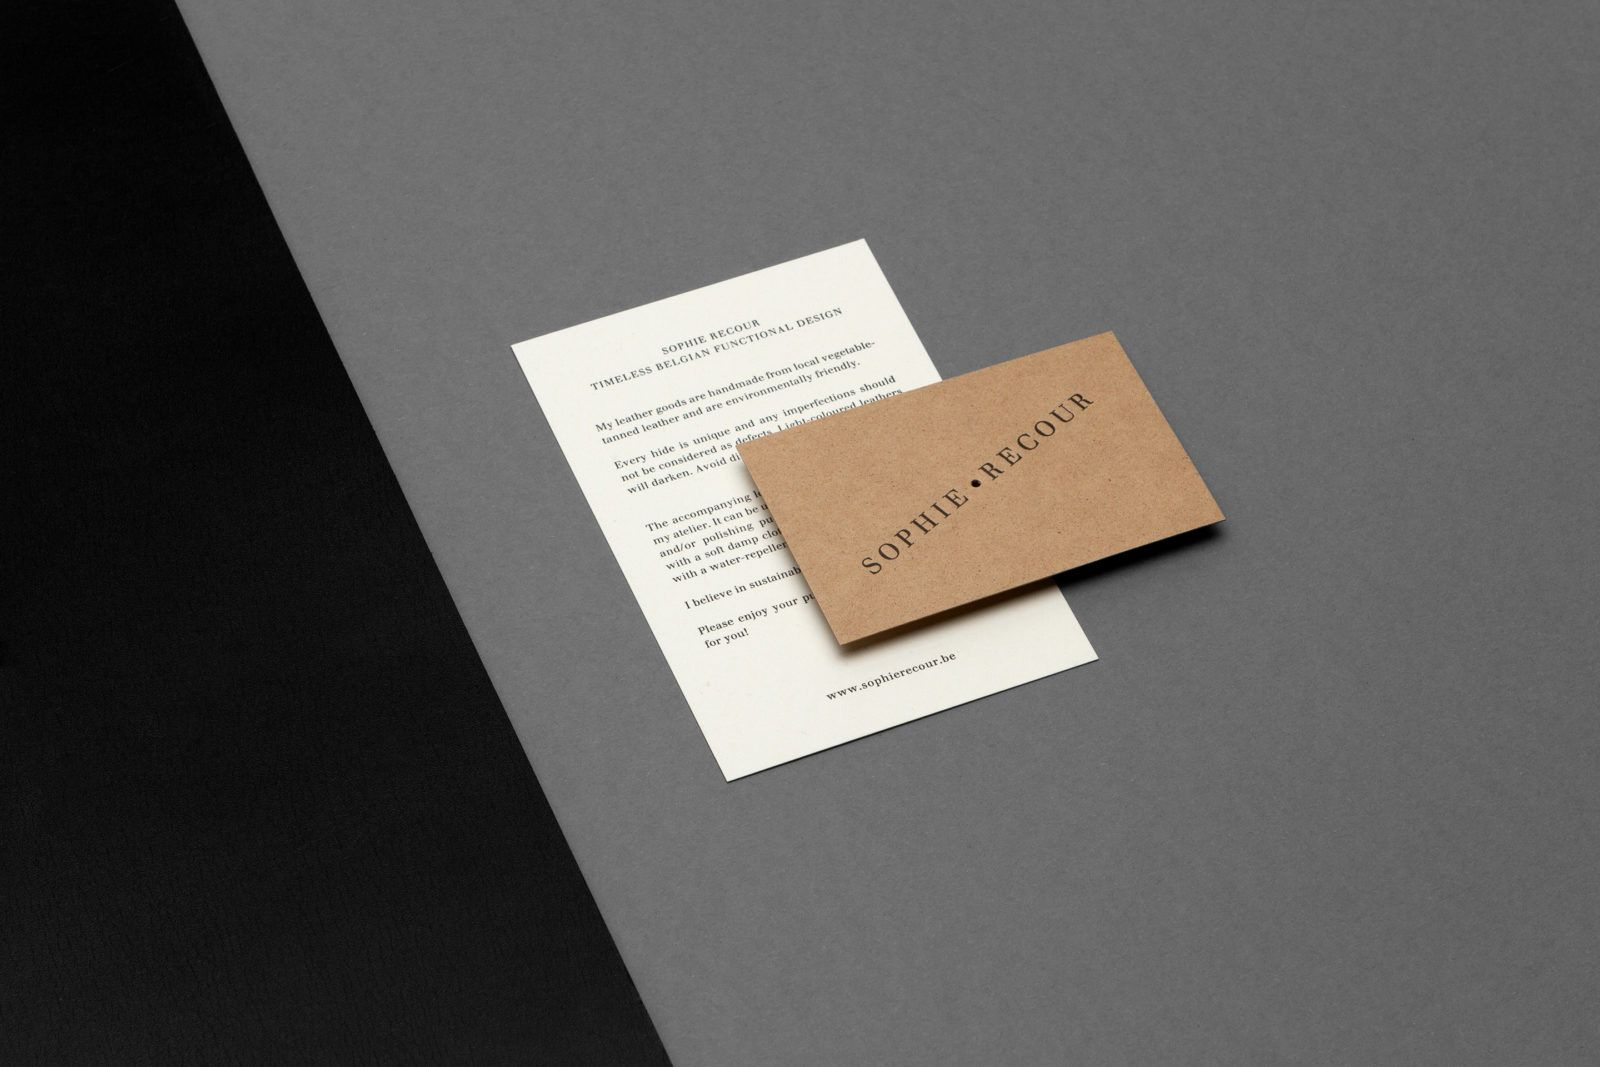 Printed matter for accessories designer Sophie Recour designed by Dogma